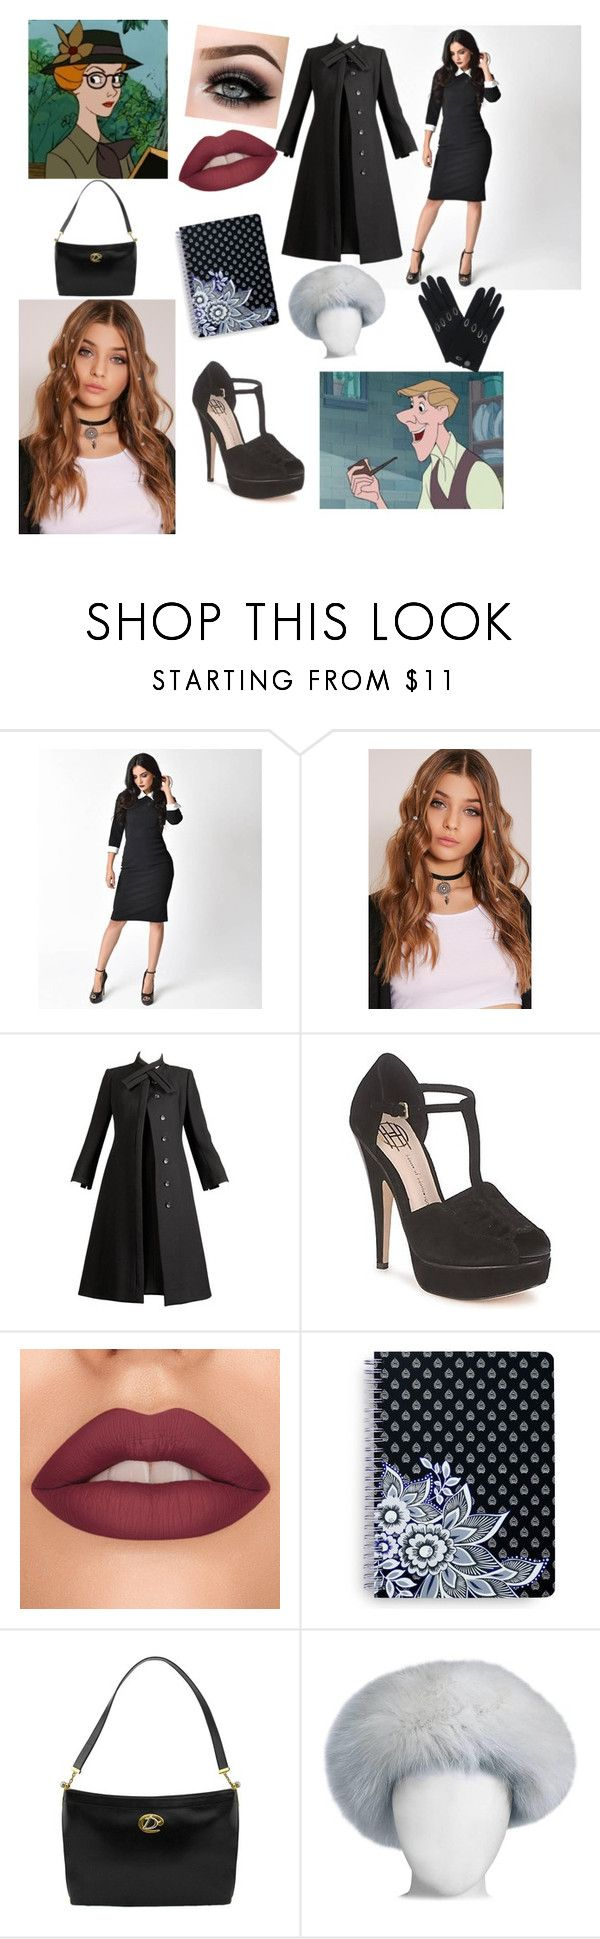 """""""Descendant of Anita and Roger Radcliffe"""" by angel-armitage on Polyvore featuring Radcliffe, The Pretty Dress Company, Pauline Trigère, House of Harlow 1960, ASAP, Vera Bradley, Christian Dior and Saks Fifth Avenue"""